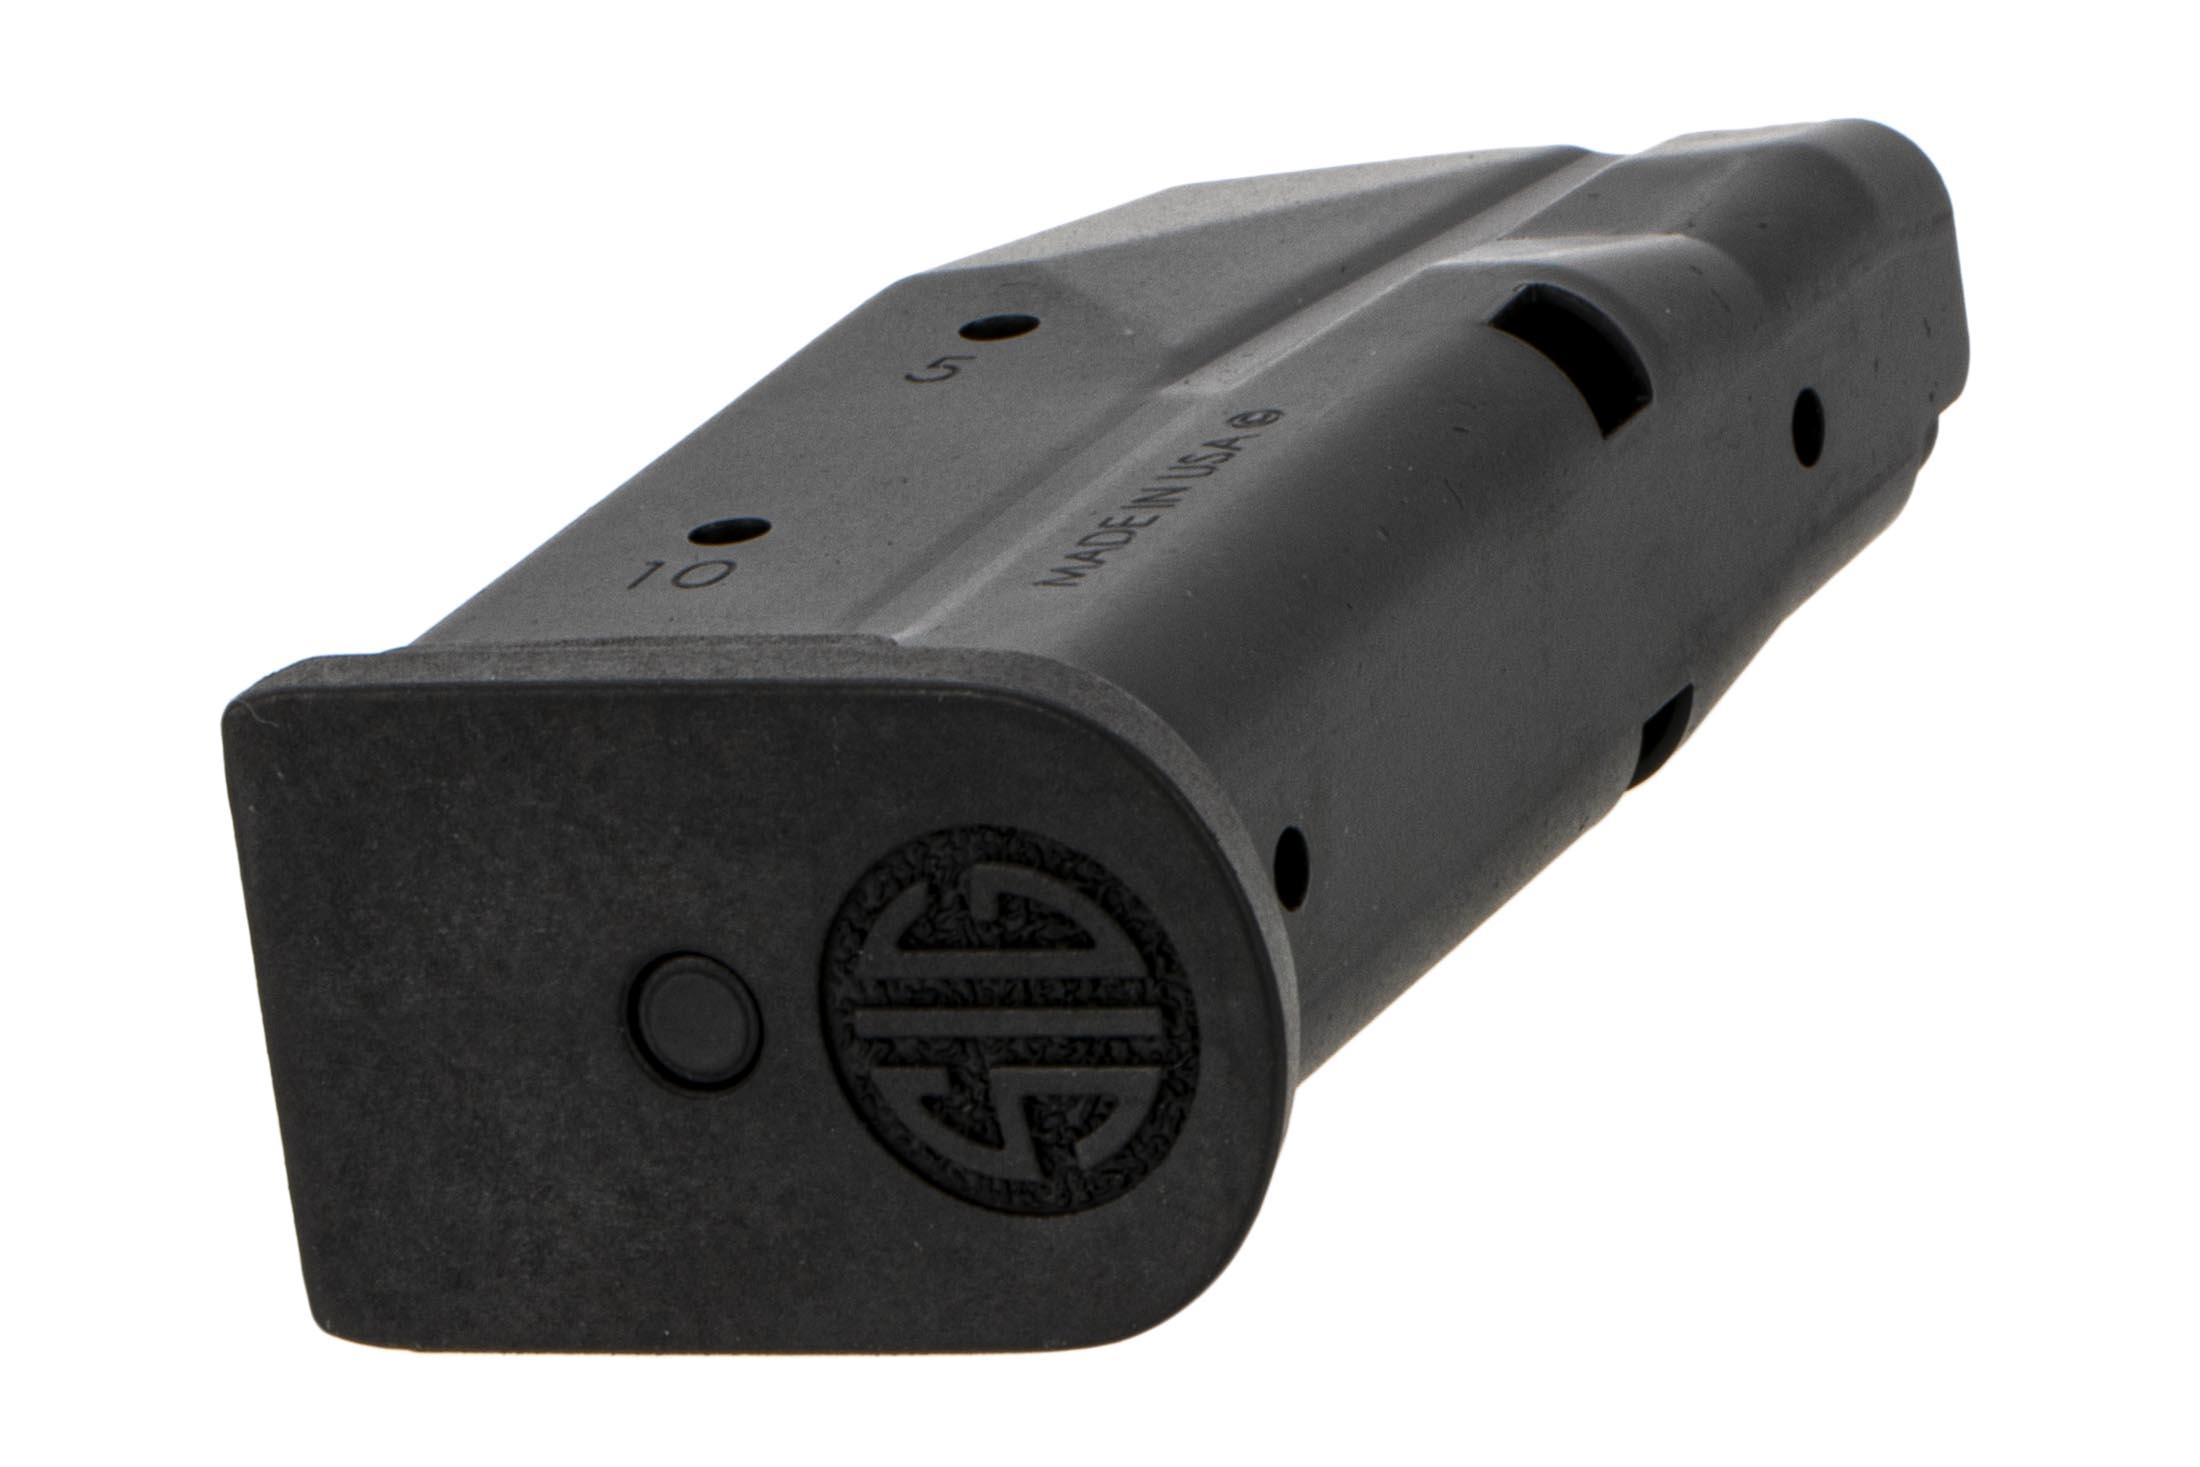 SIG Sauer P365 magazine holds 10-rounds of 9mm Auto ammo with witness holes and easy disassembly.